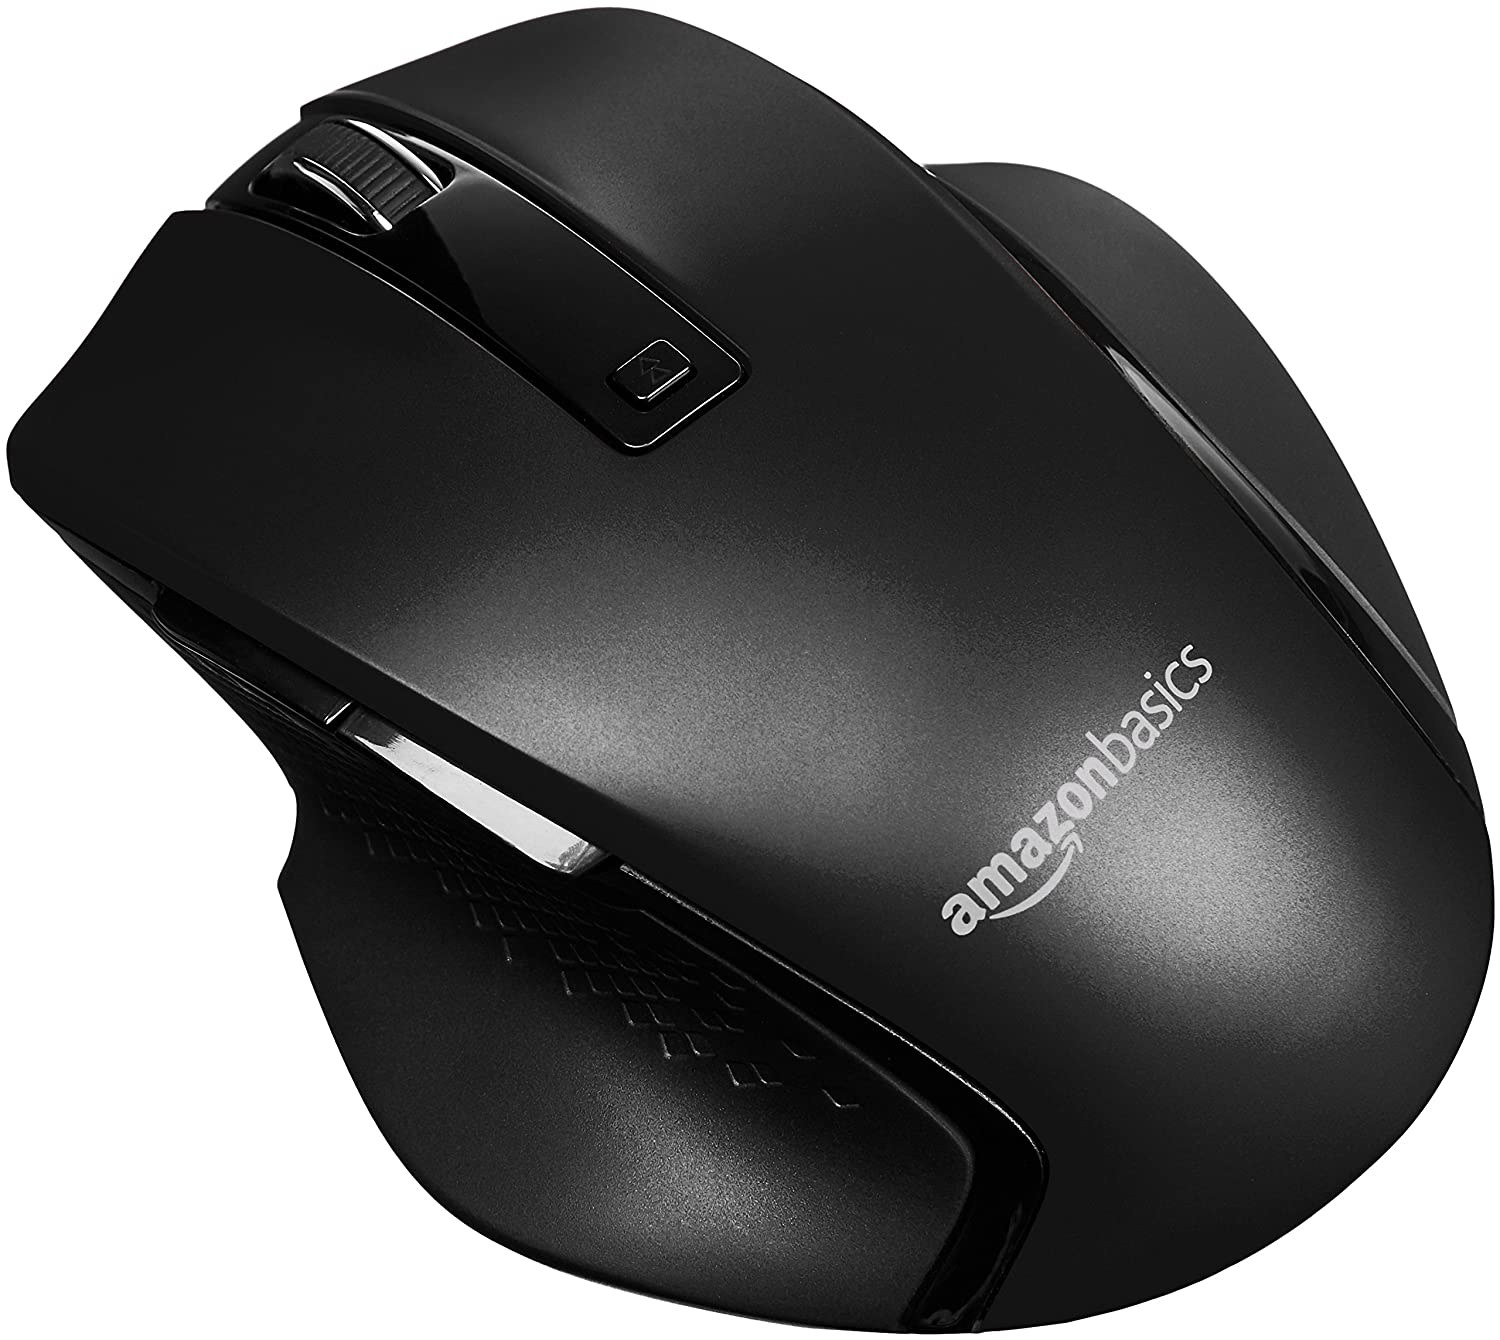 AmazonBasics Compact Ergonomic Wireless Mouse with Fast Scrolling - Black